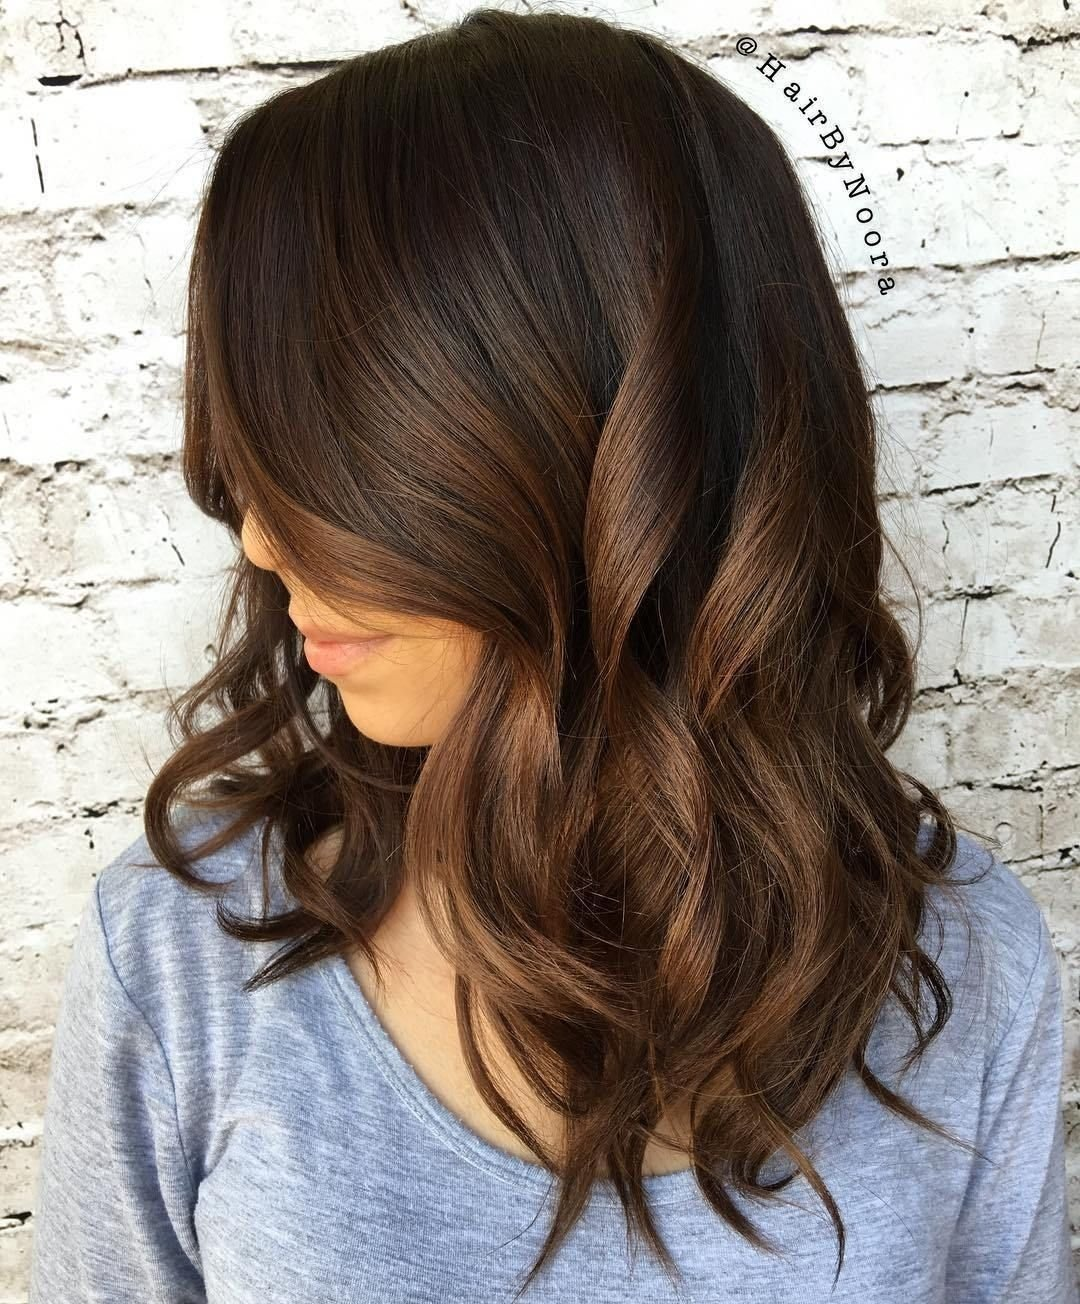 10 Awesome Hair Color Ideas For Brunettes With Highlights 60 chocolate brown hair color ideas for brunettes brunette ombre 2